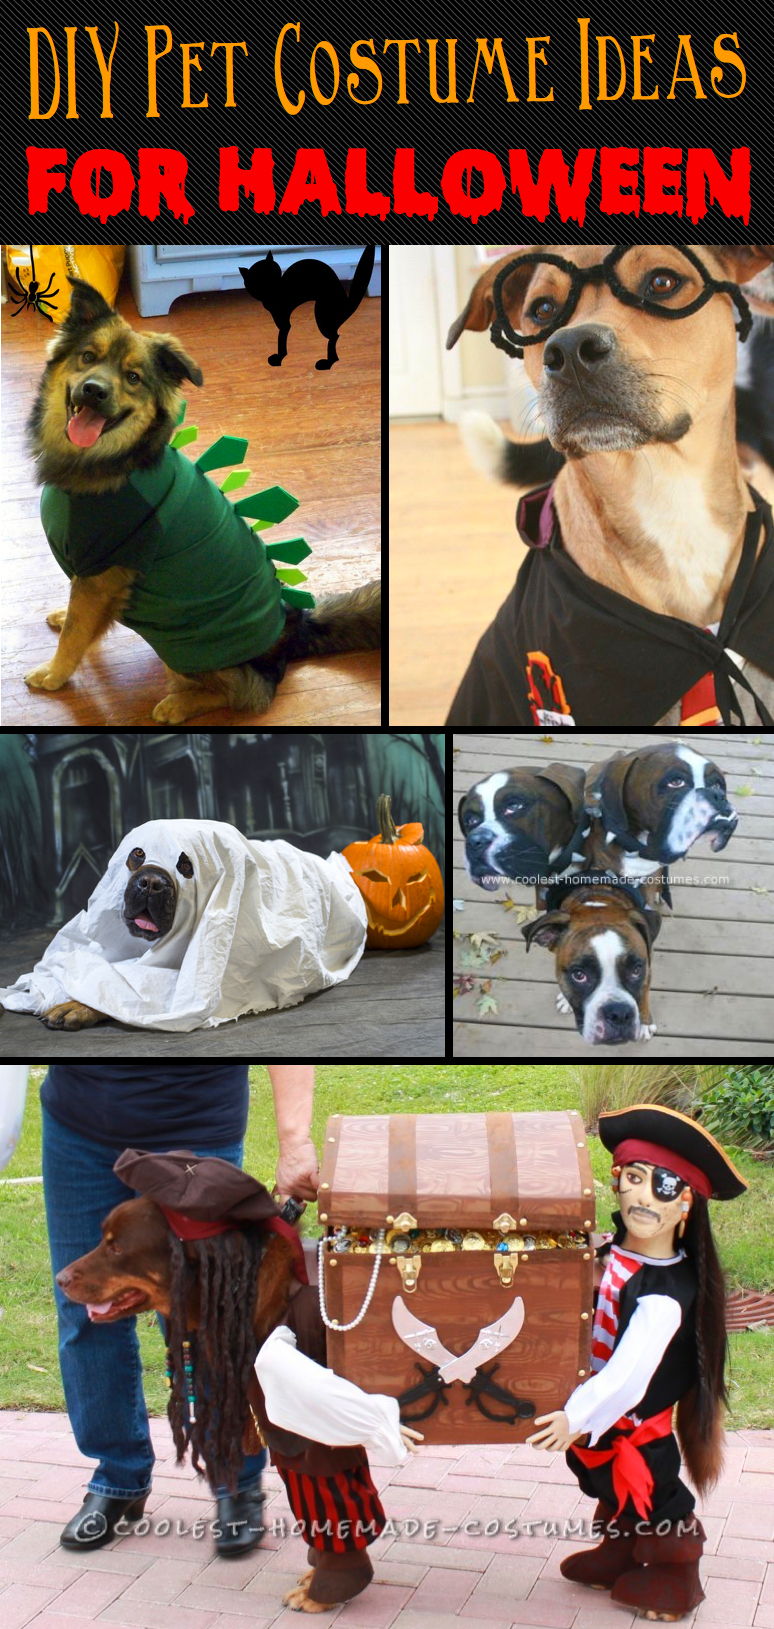 20 Adorable Diy Pet Costume Ideas For